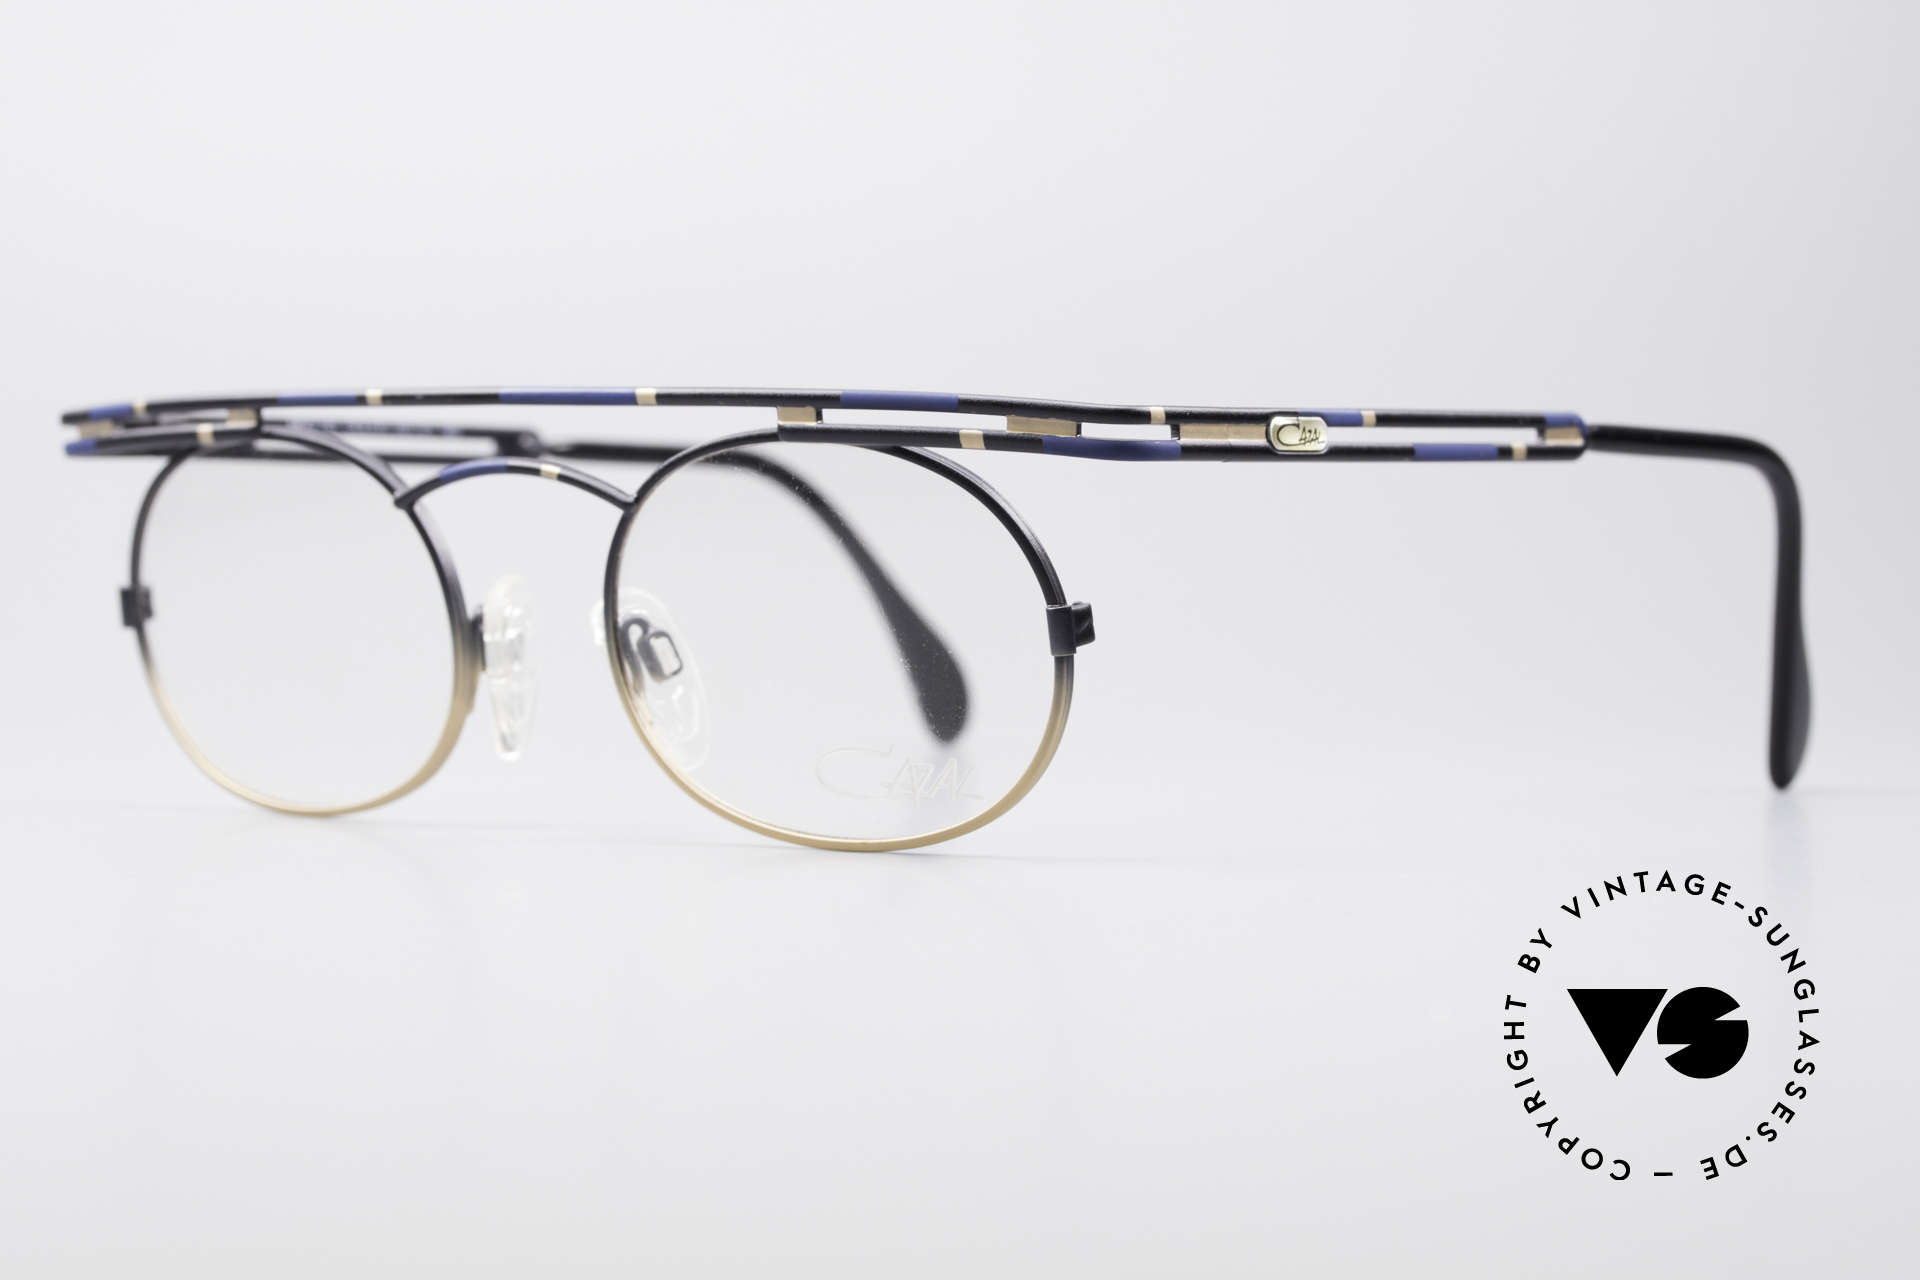 Cazal 761 True Vintage Frame NO Retro, top-notch craftsmanship (frame 'made in Germany'), Made for Men and Women